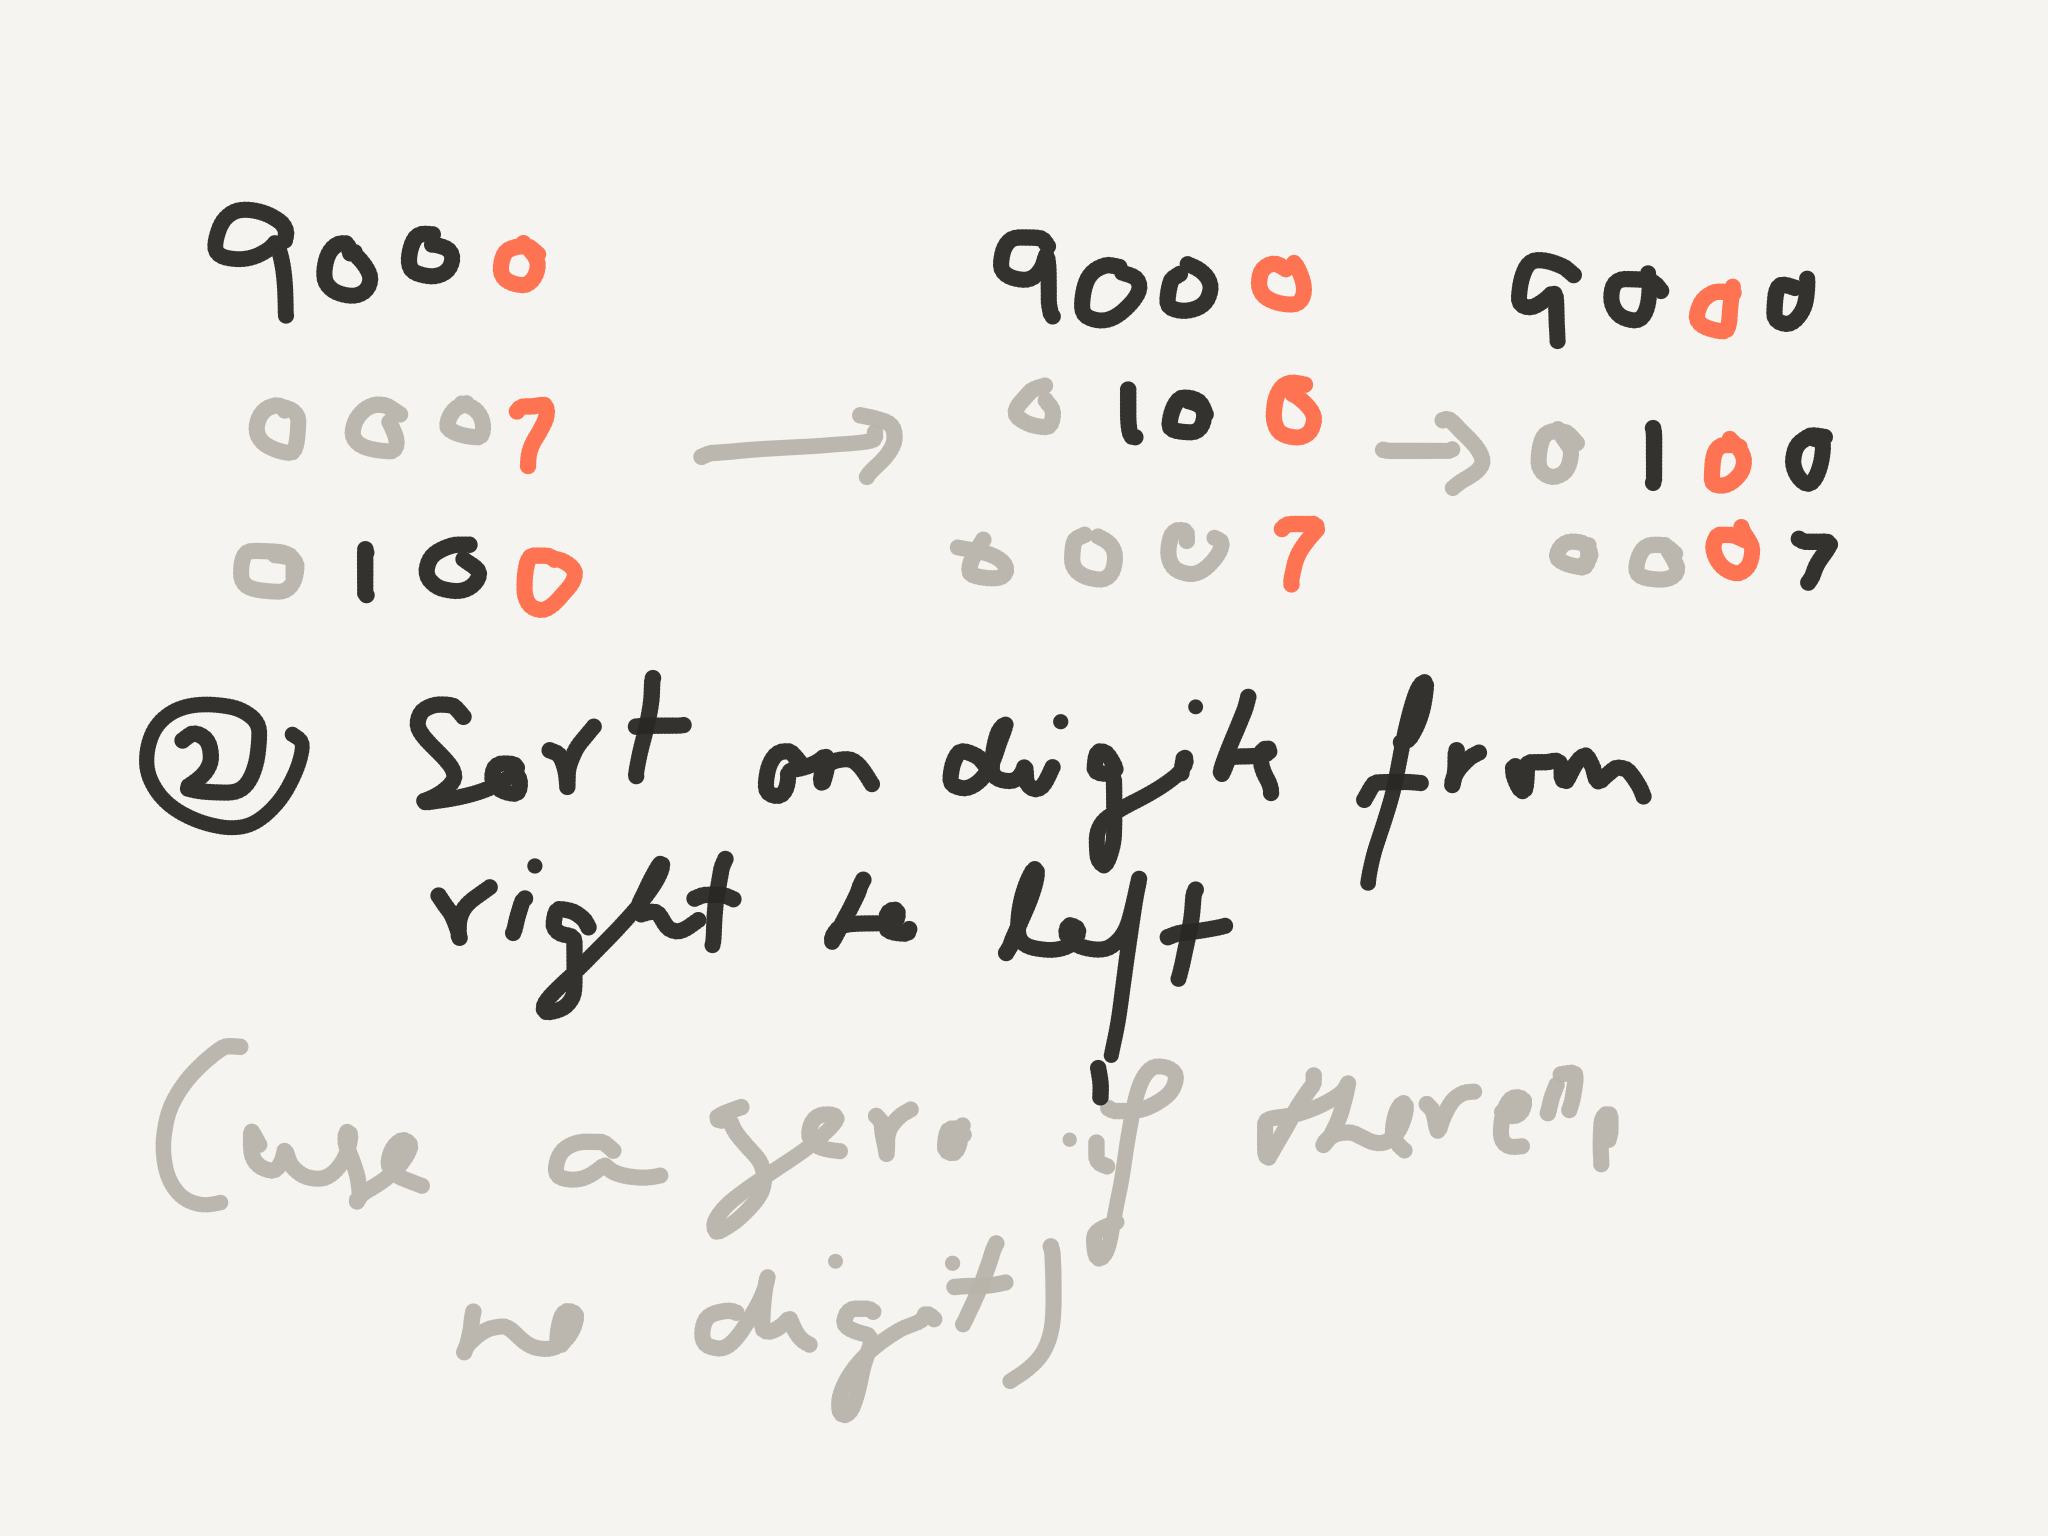 Starting with the right most digit, sort the numbers using a stable sorting algorithm